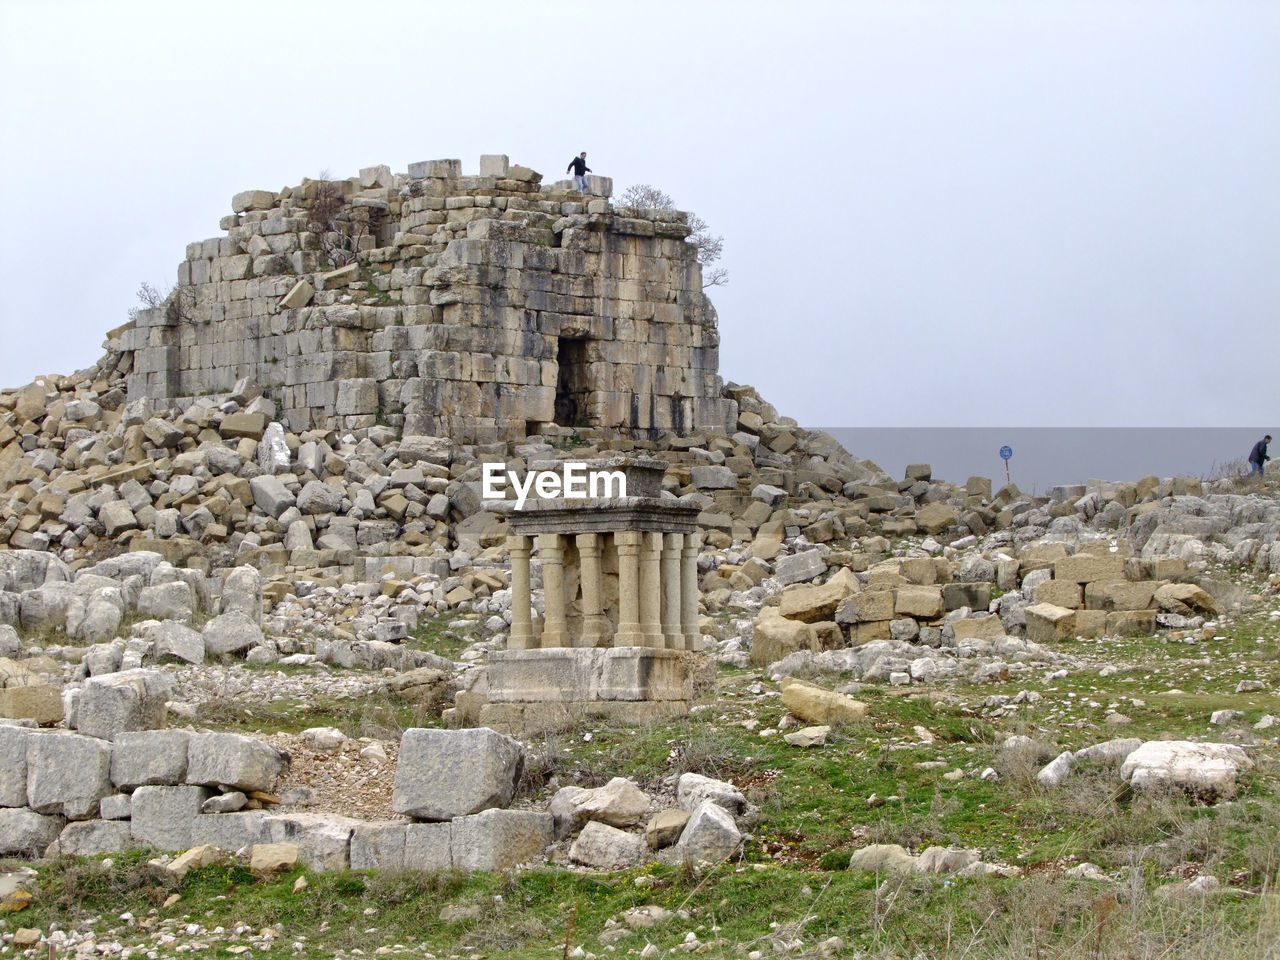 old ruin, architecture, ancient, history, built structure, ancient civilization, archaeology, building exterior, damaged, rock - object, day, outdoors, travel destinations, sky, no people, clear sky, animal themes, nature, bird